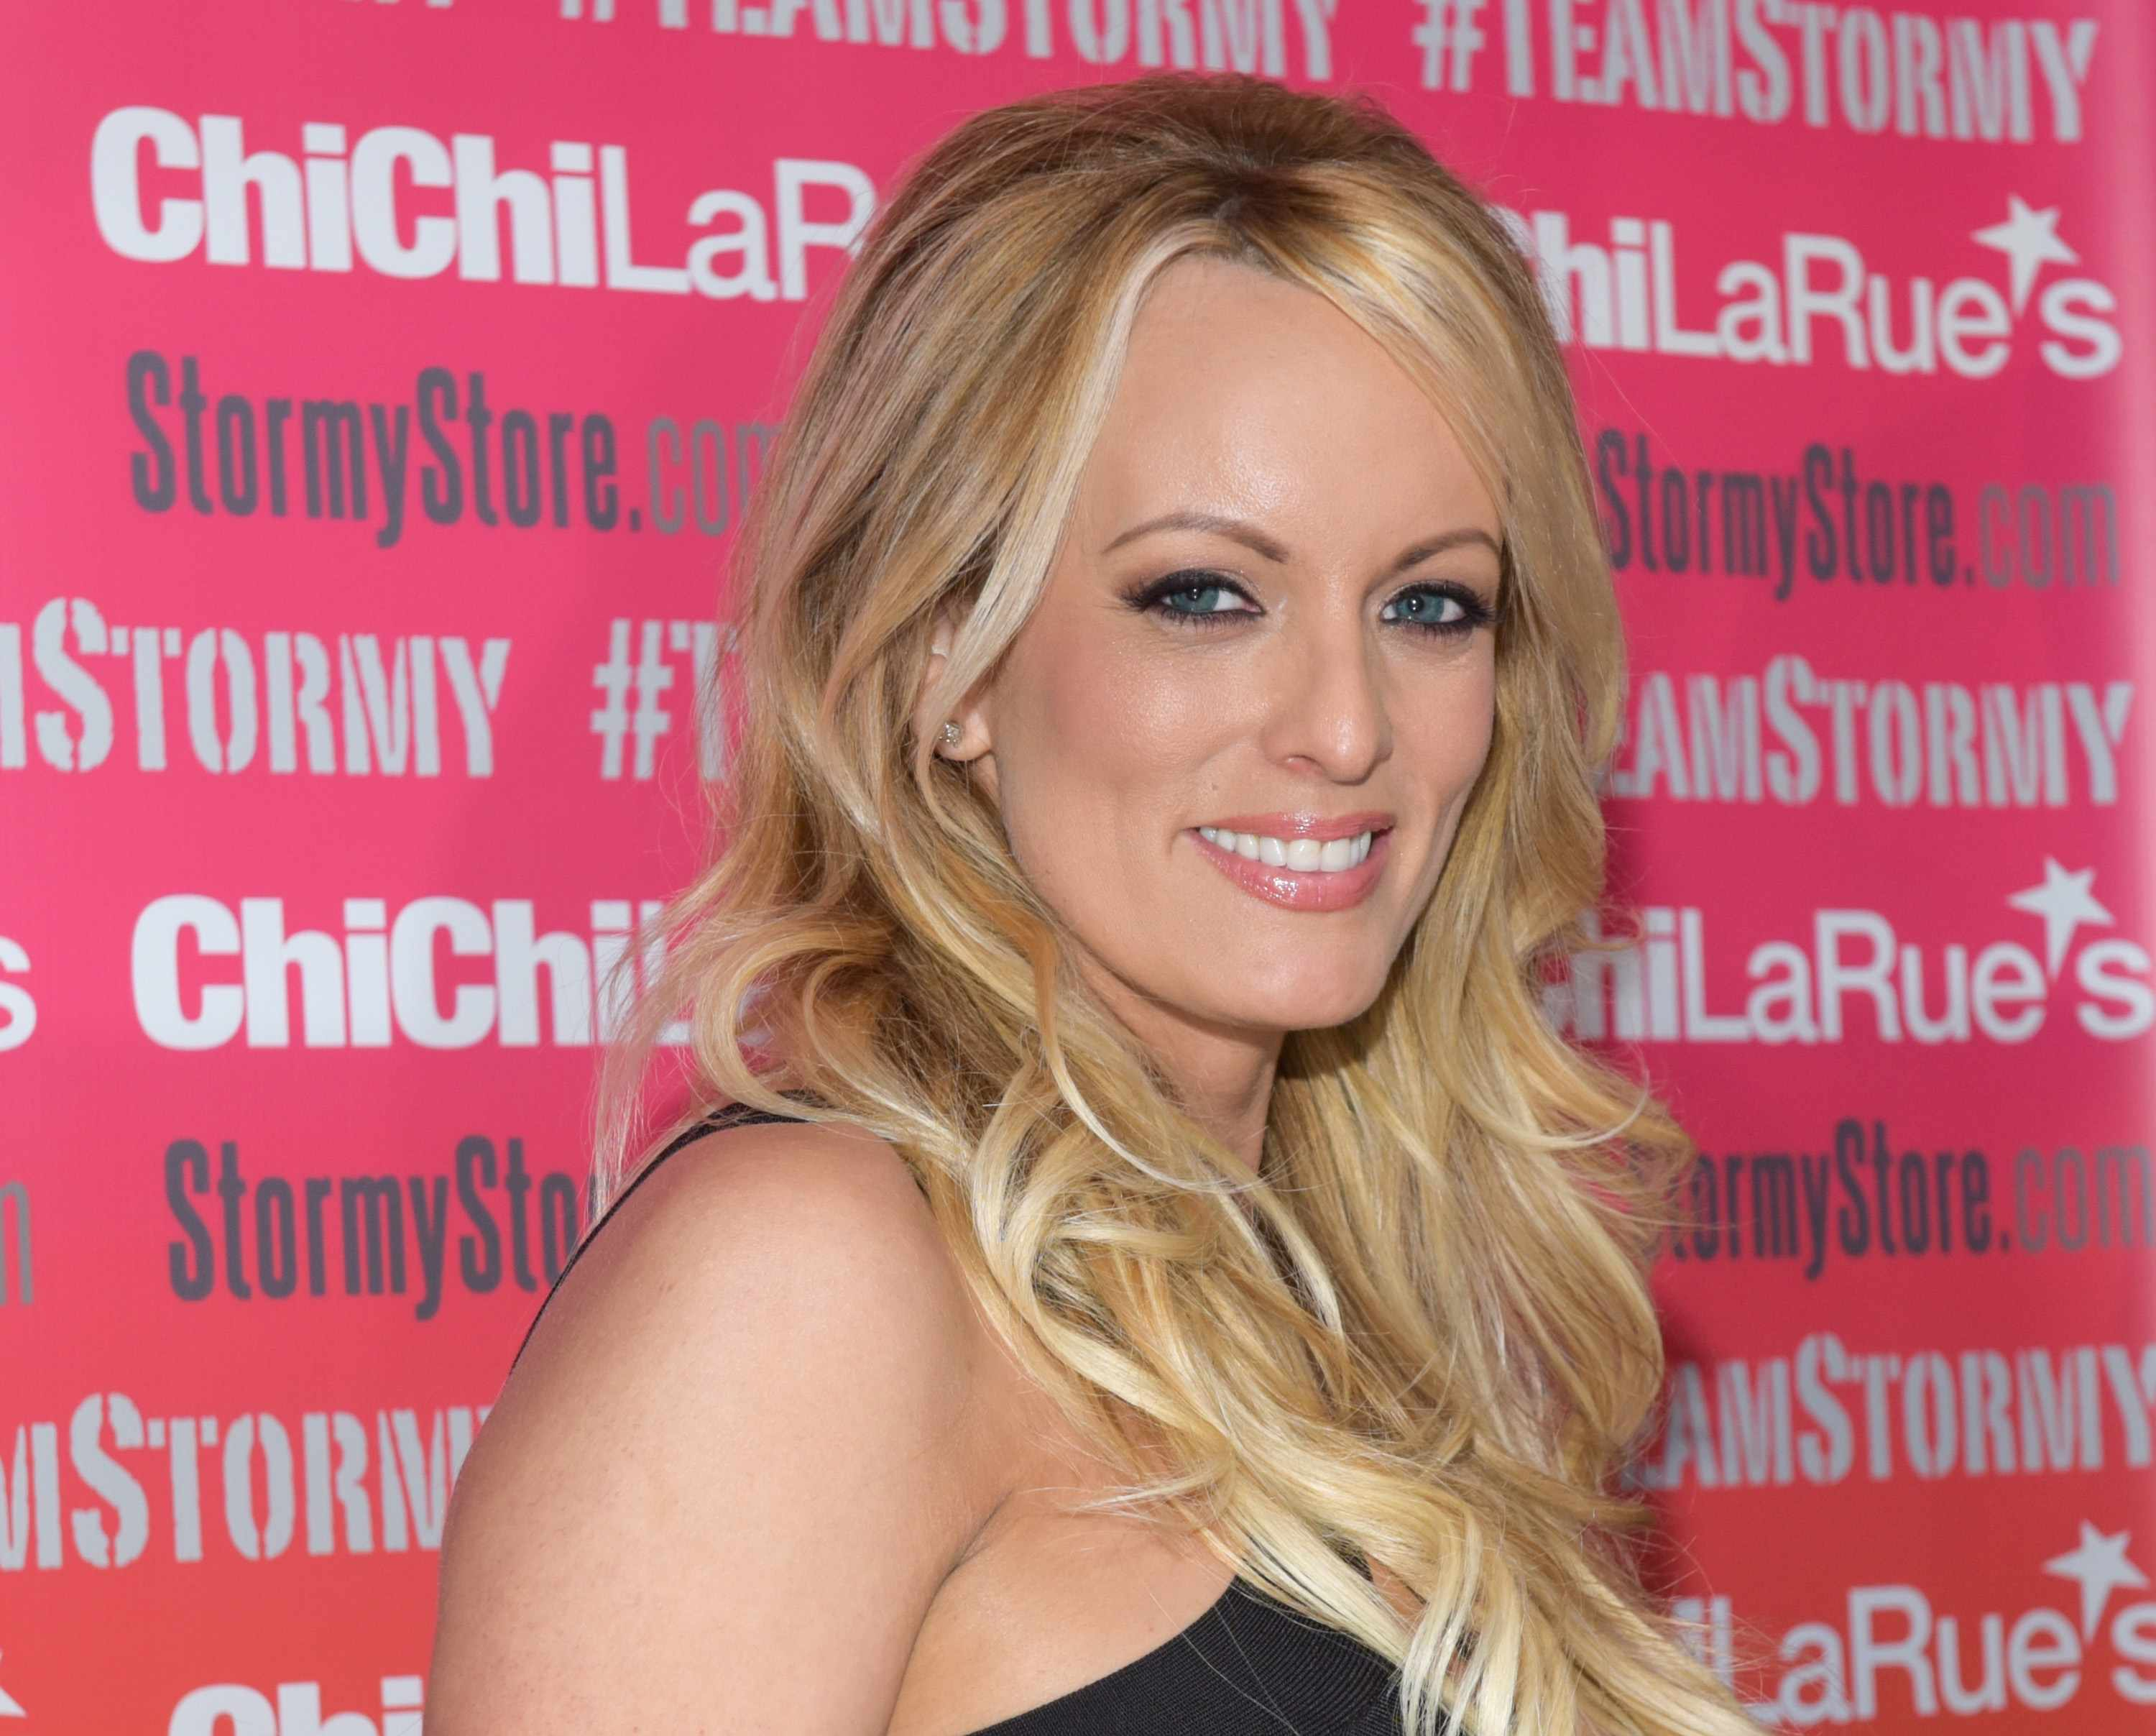 WEST HOLLYWOOD, CA - MAY 23:  Stormy Daniels attends a fan meet and greet at Chi Chi LaRue's on May 23, 2018 in West Hollywood, California.  (Photo by Tara Ziemba/Getty Images) TL